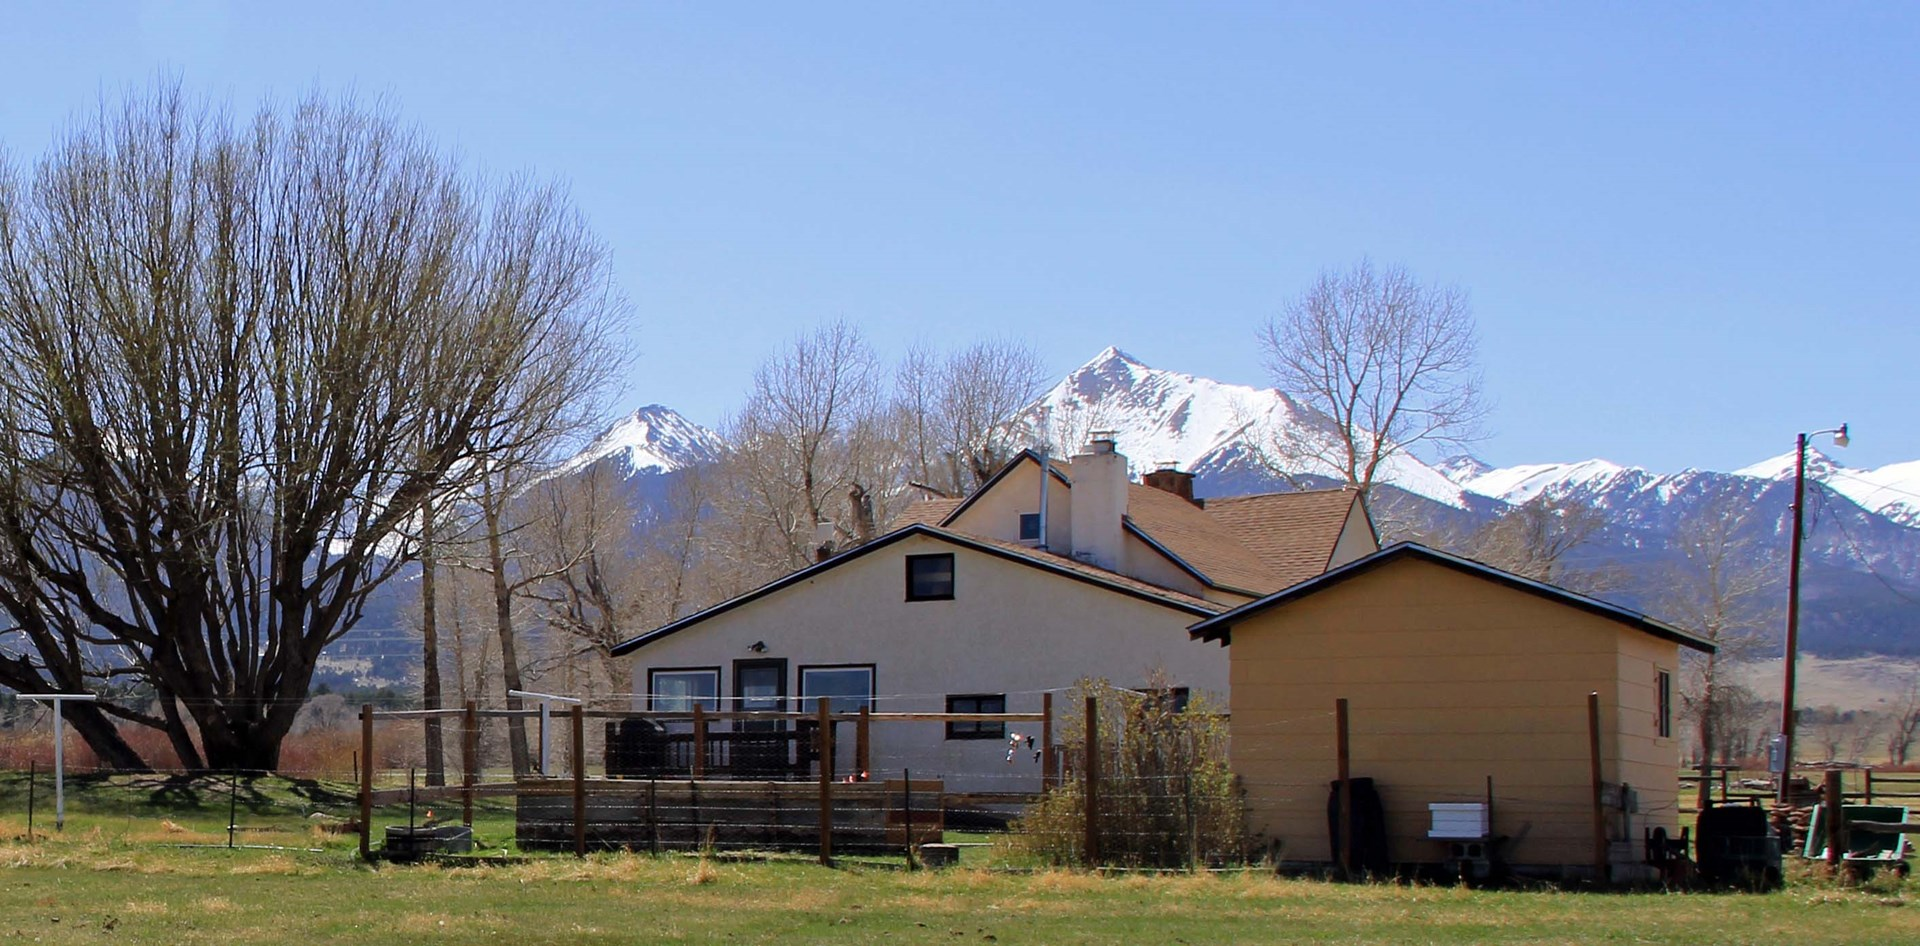 Farmhouse in Westcliffe Colorado